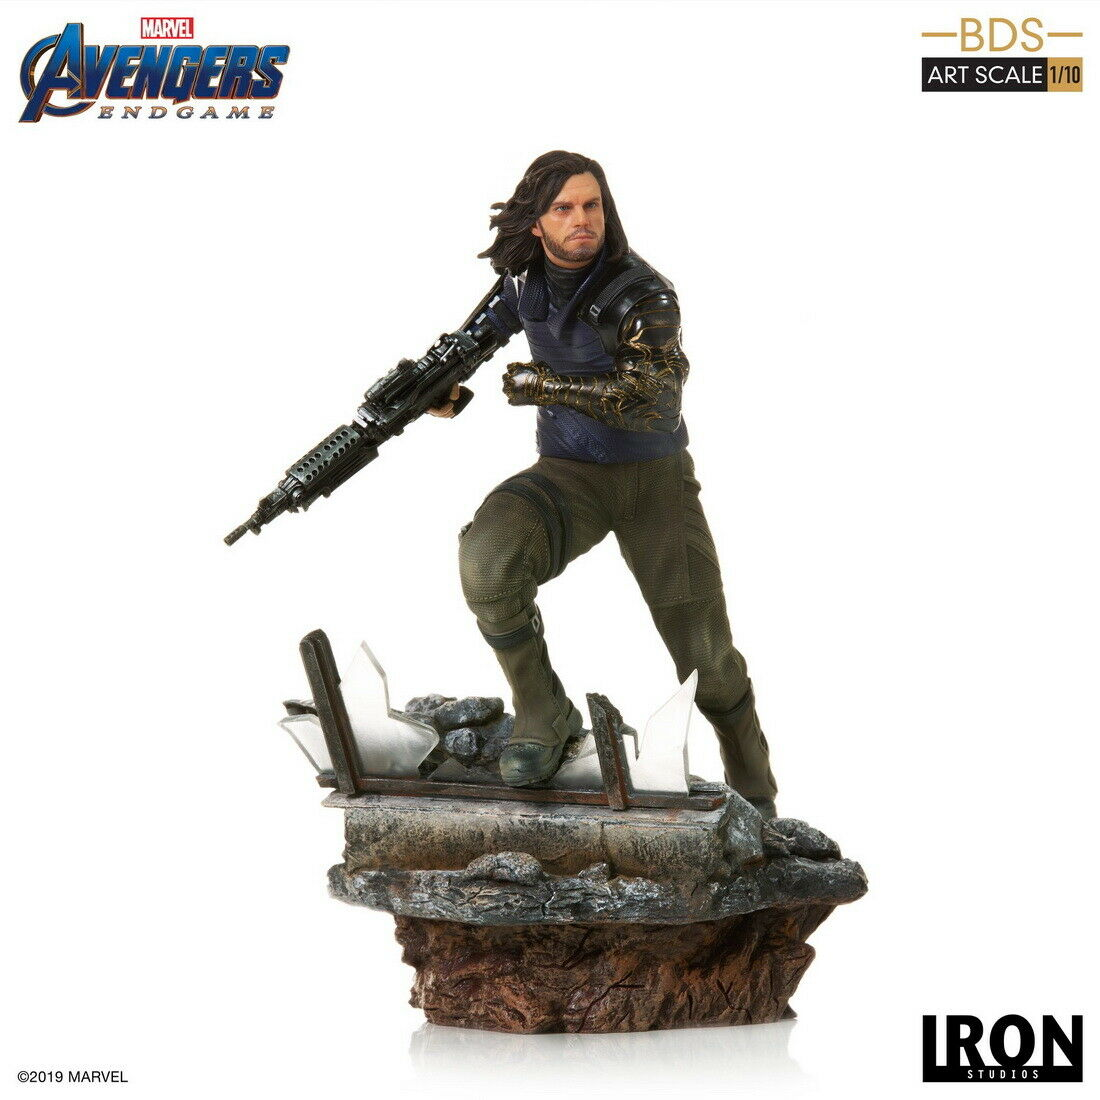 Iron Studios Avengers: Endgame Winter Soldier BDS Art 1/10 Statue on eBay thumbnail